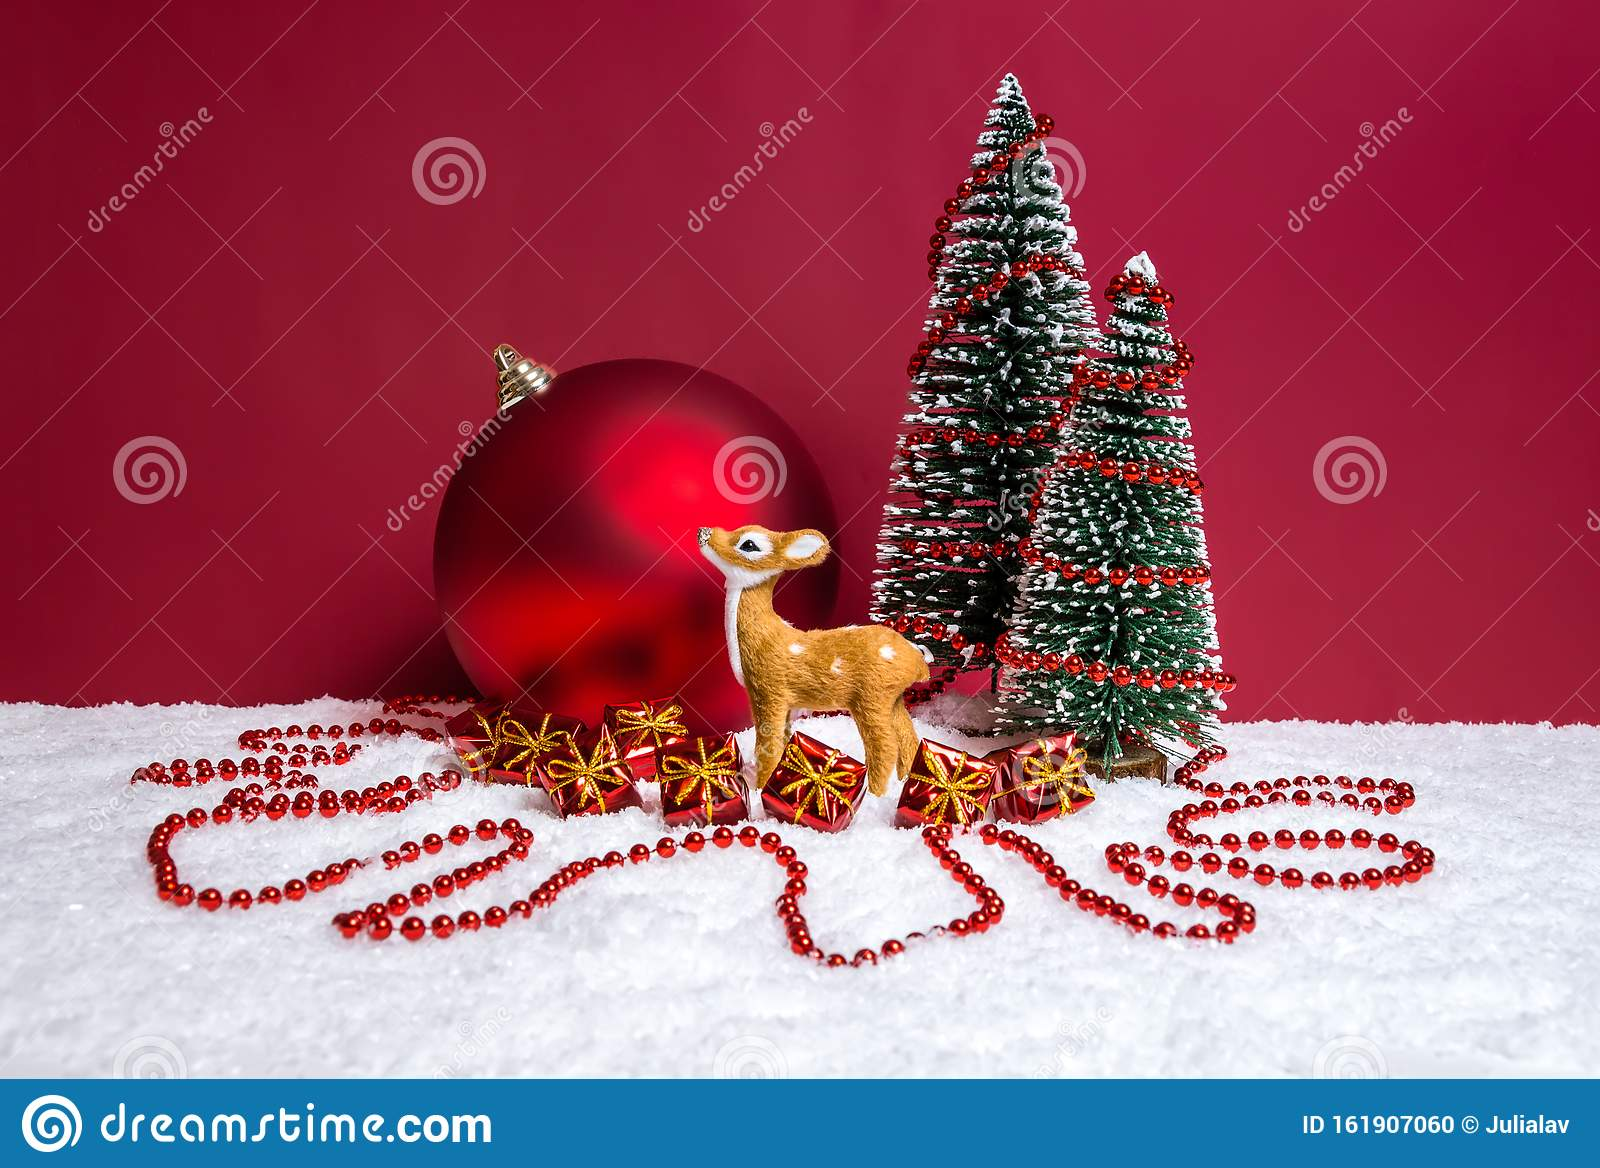 Christmas Theme With Miniature Reindeer Decorated Christmas Trees Presents And Big Bauble On Red Background Stock Photo Image Of Happy Evergreen 161907060